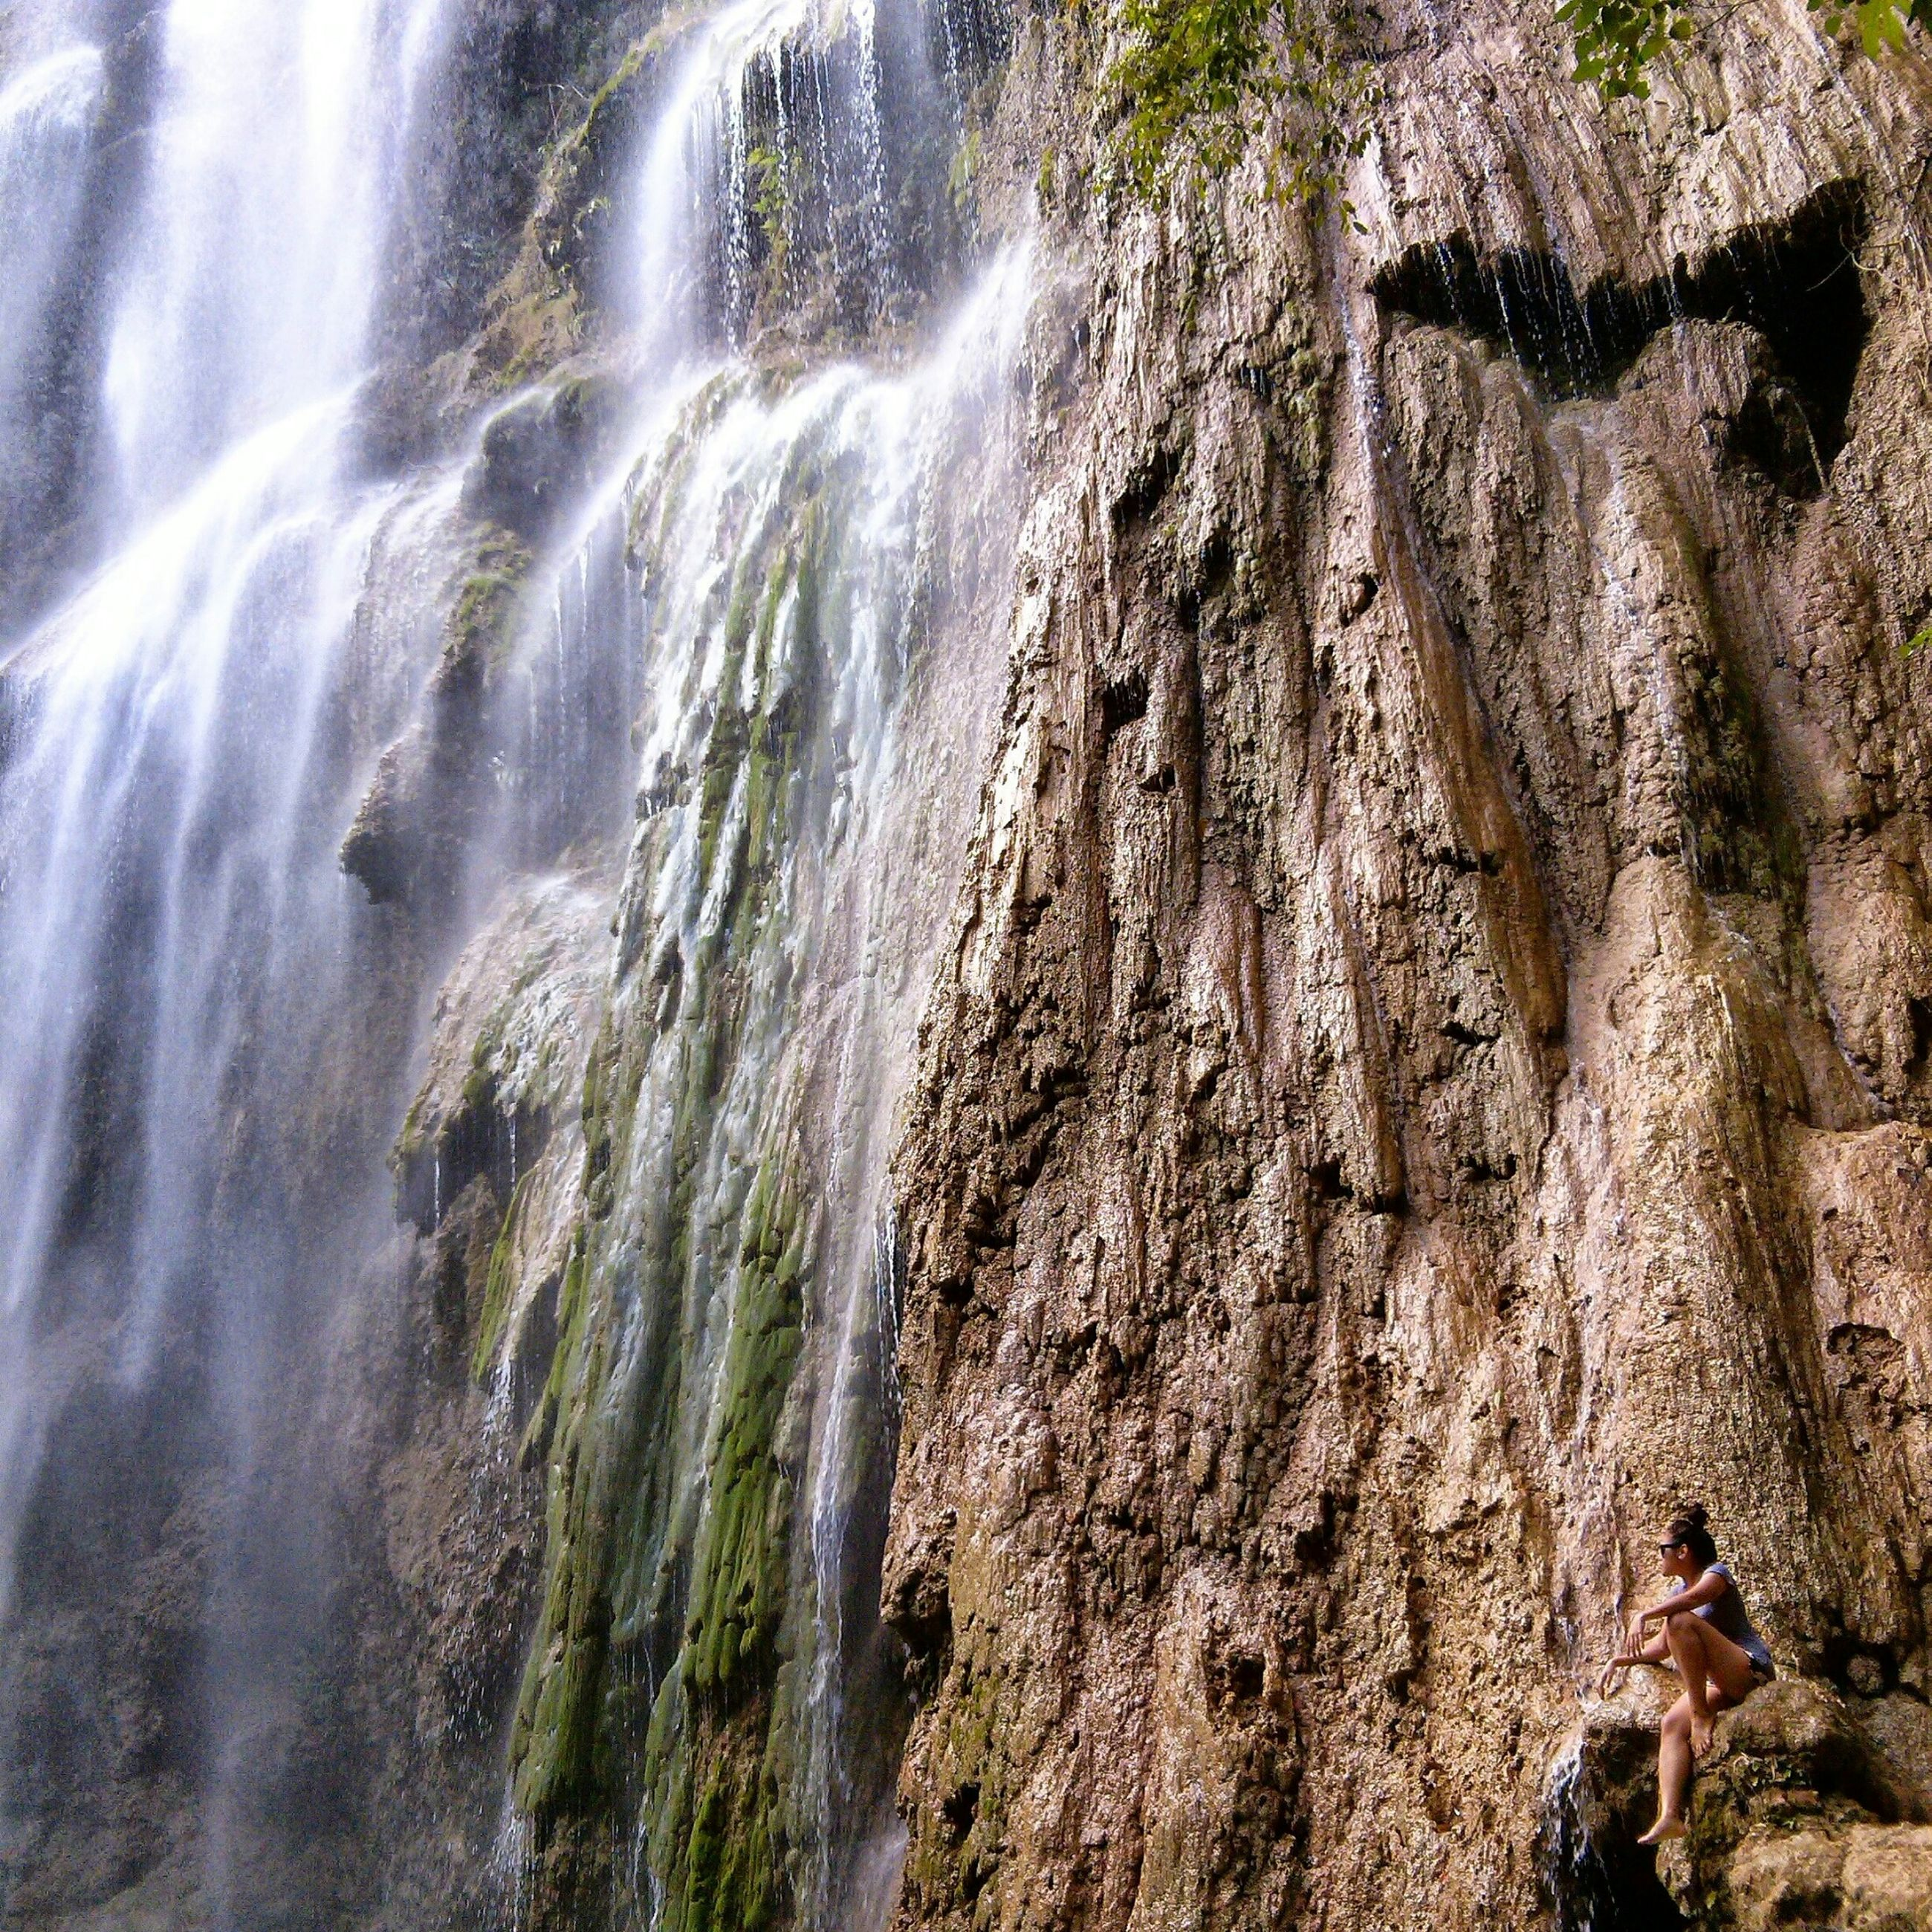 water, full frame, backgrounds, high angle view, motion, nature, textured, rock - object, waterfall, flowing water, day, outdoors, no people, close-up, beauty in nature, rough, sunlight, low angle view, rock formation, tree